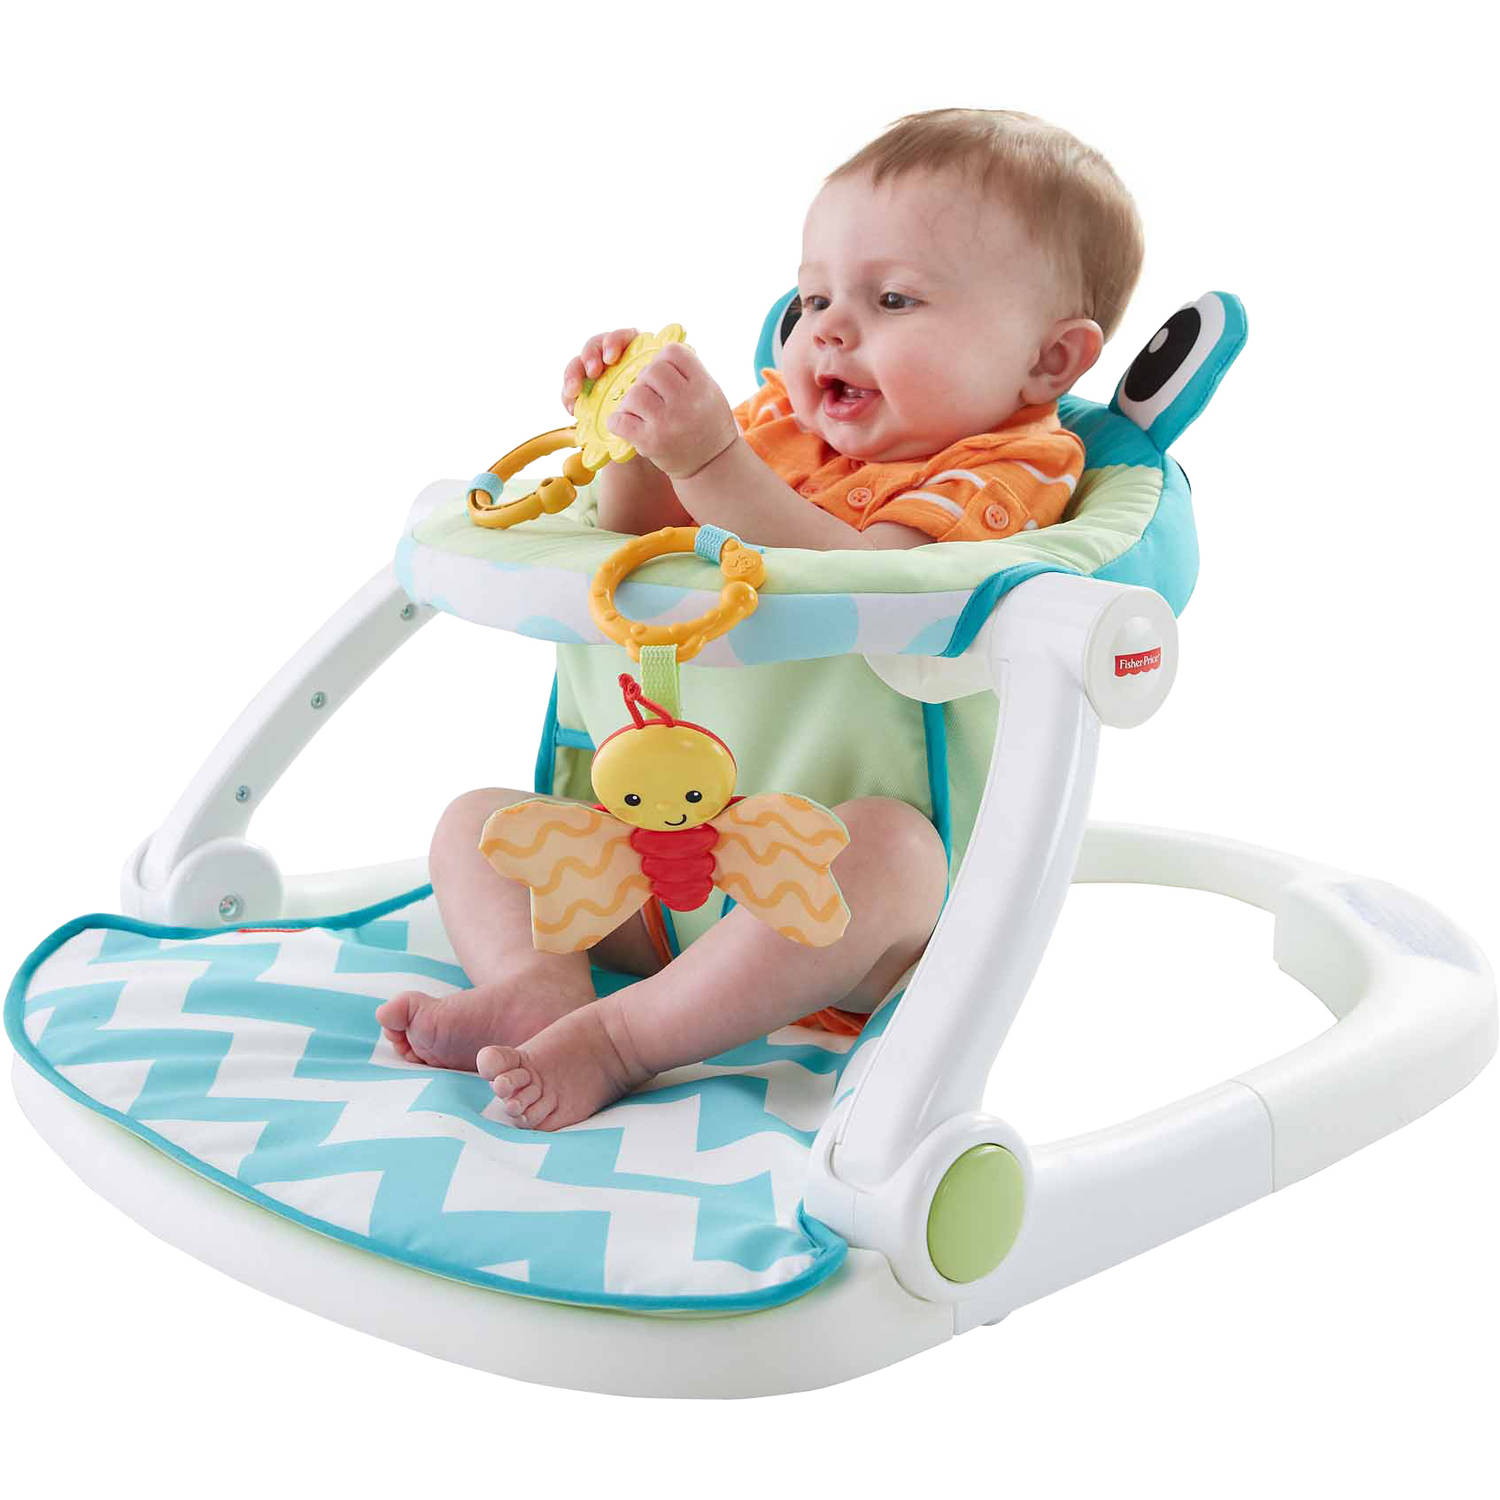 Activity Chair Deluxe Baby Floor Seat Activity Center Portable Chair Pad